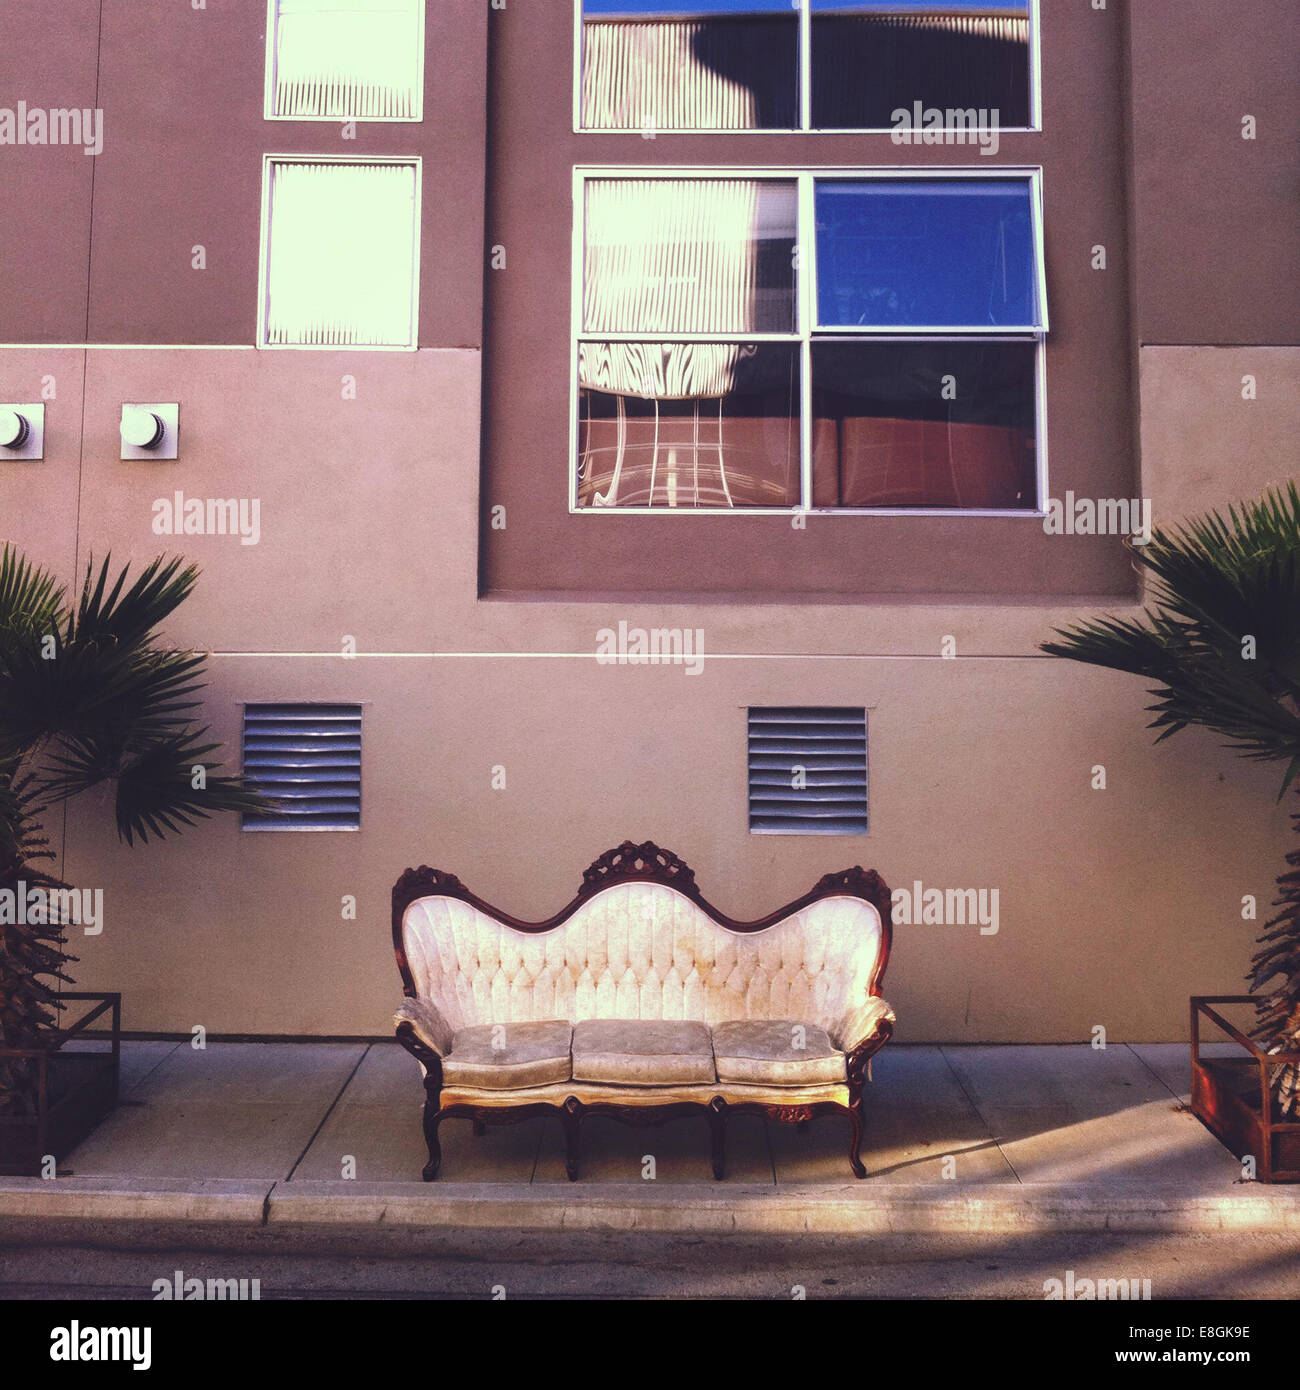 Vintage couch on sidewalk - Stock Image